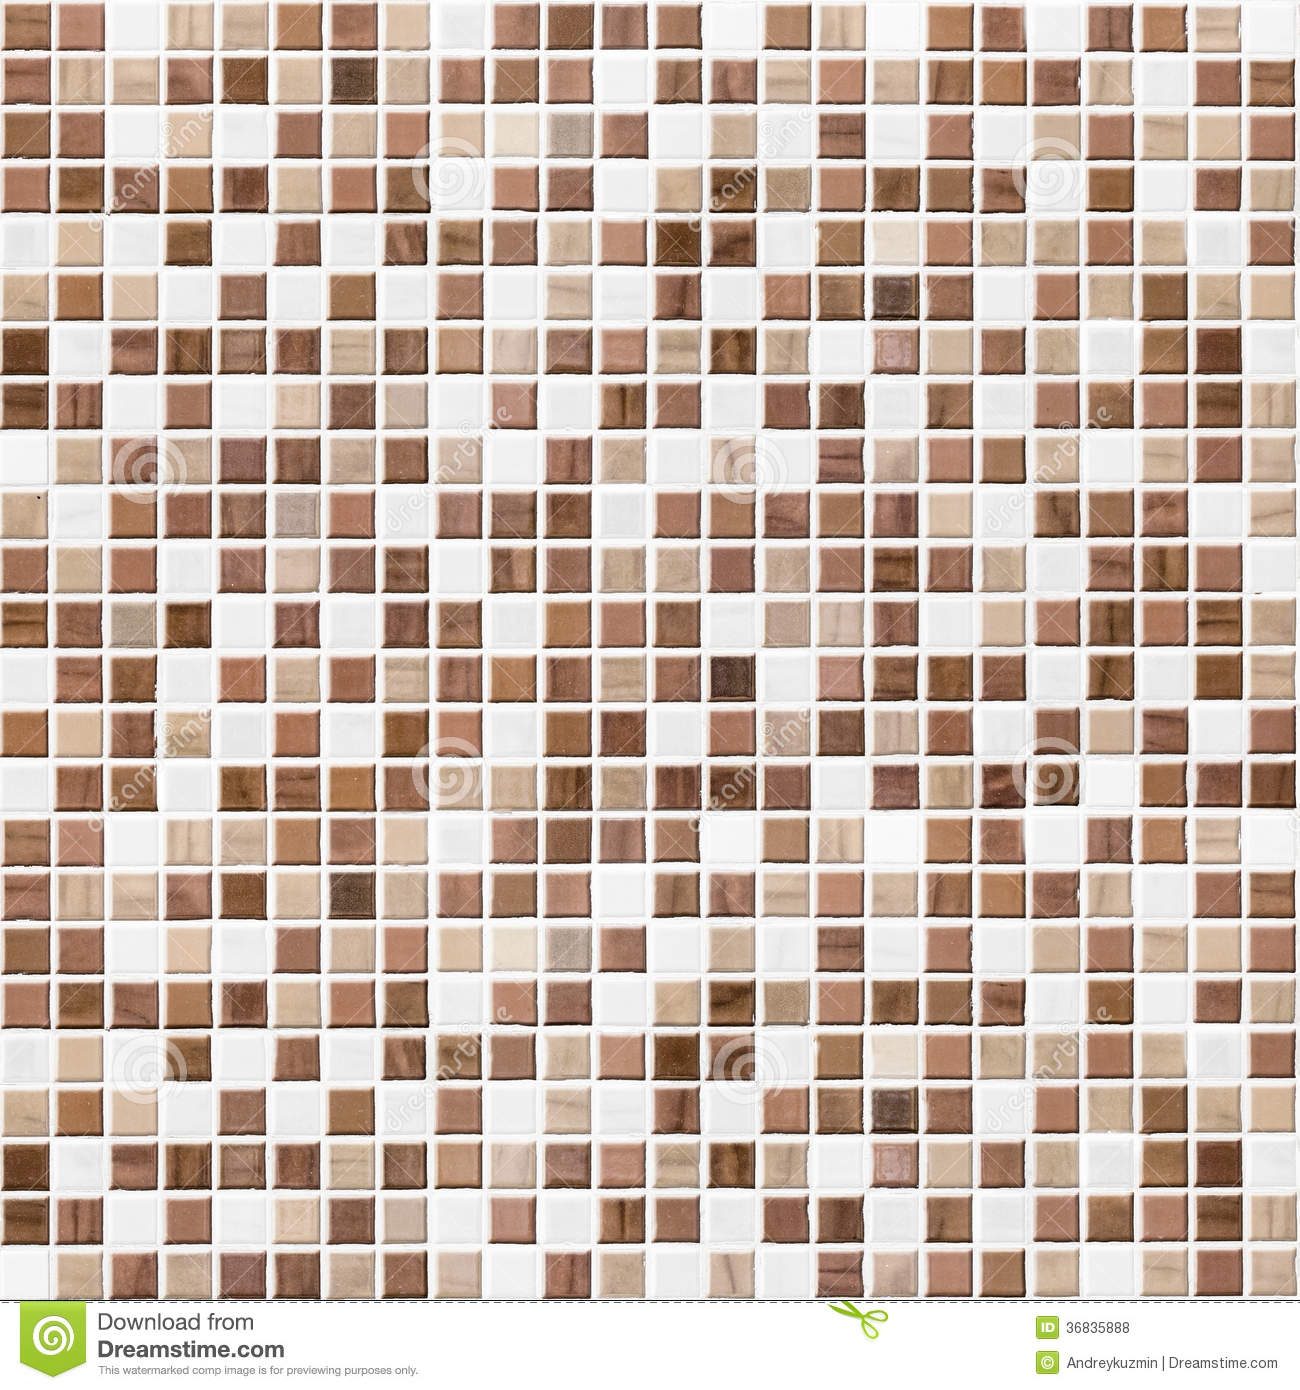 Brown Tiled Bathroom, Kitchen Or Toilet Tile Wall Background ...